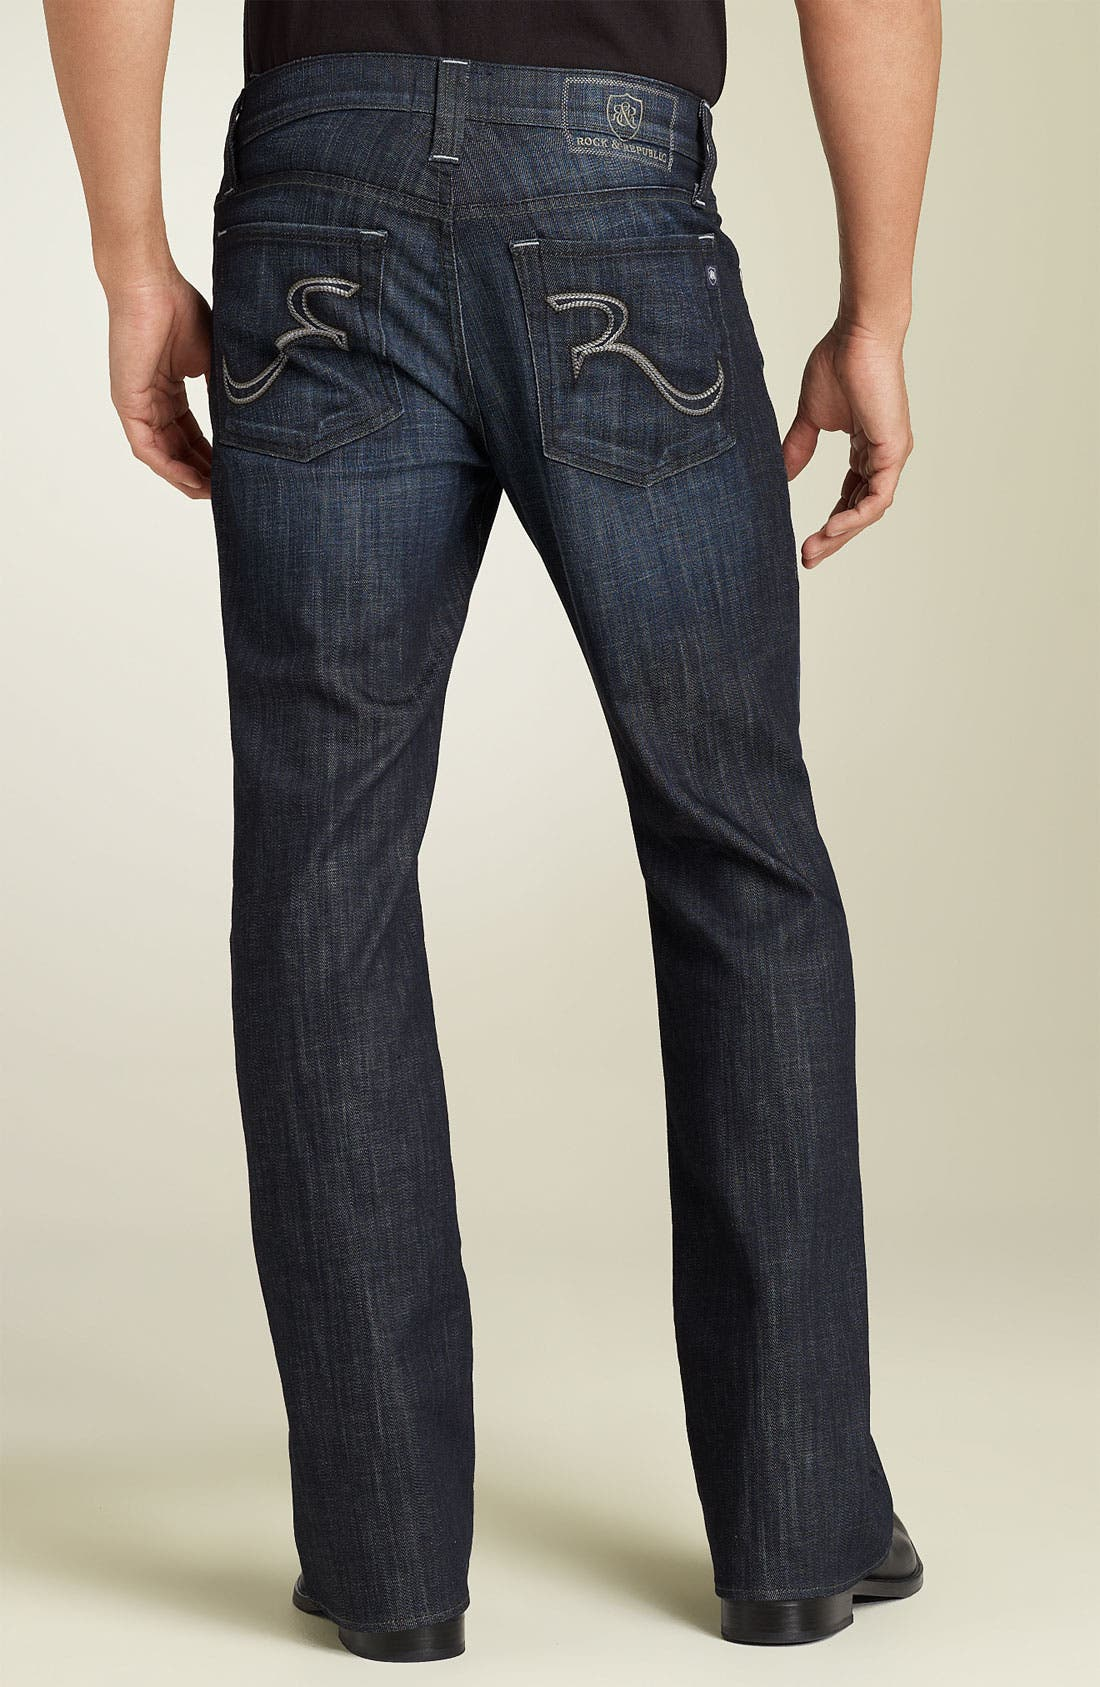 ROCK & REPUBLIC 'Henlee' Bootcut Jeans, Main, color, 400